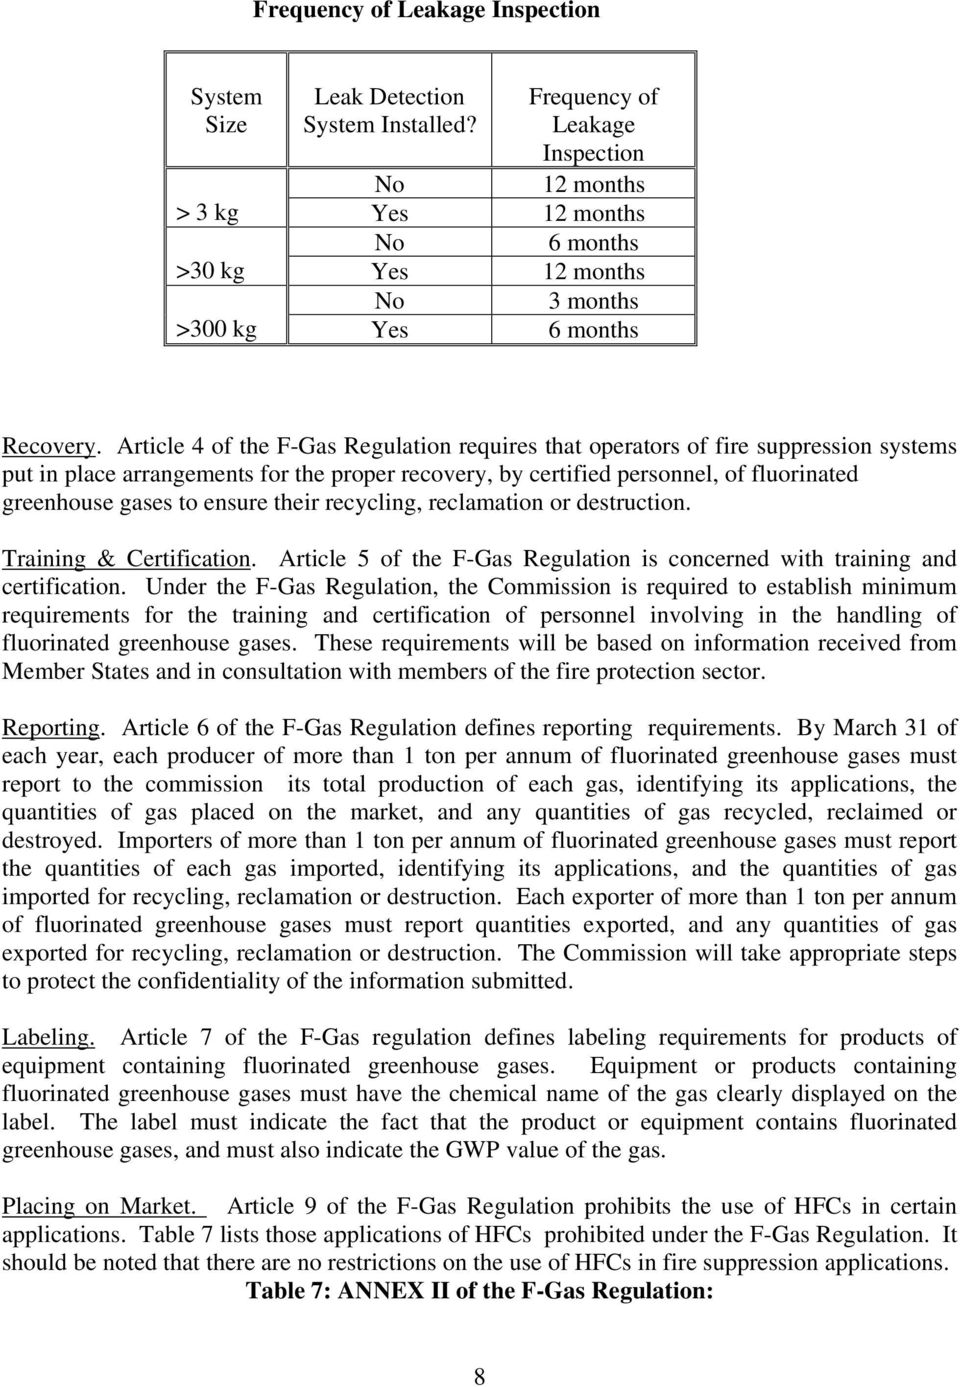 F GAS and ODS Regulations (2079)